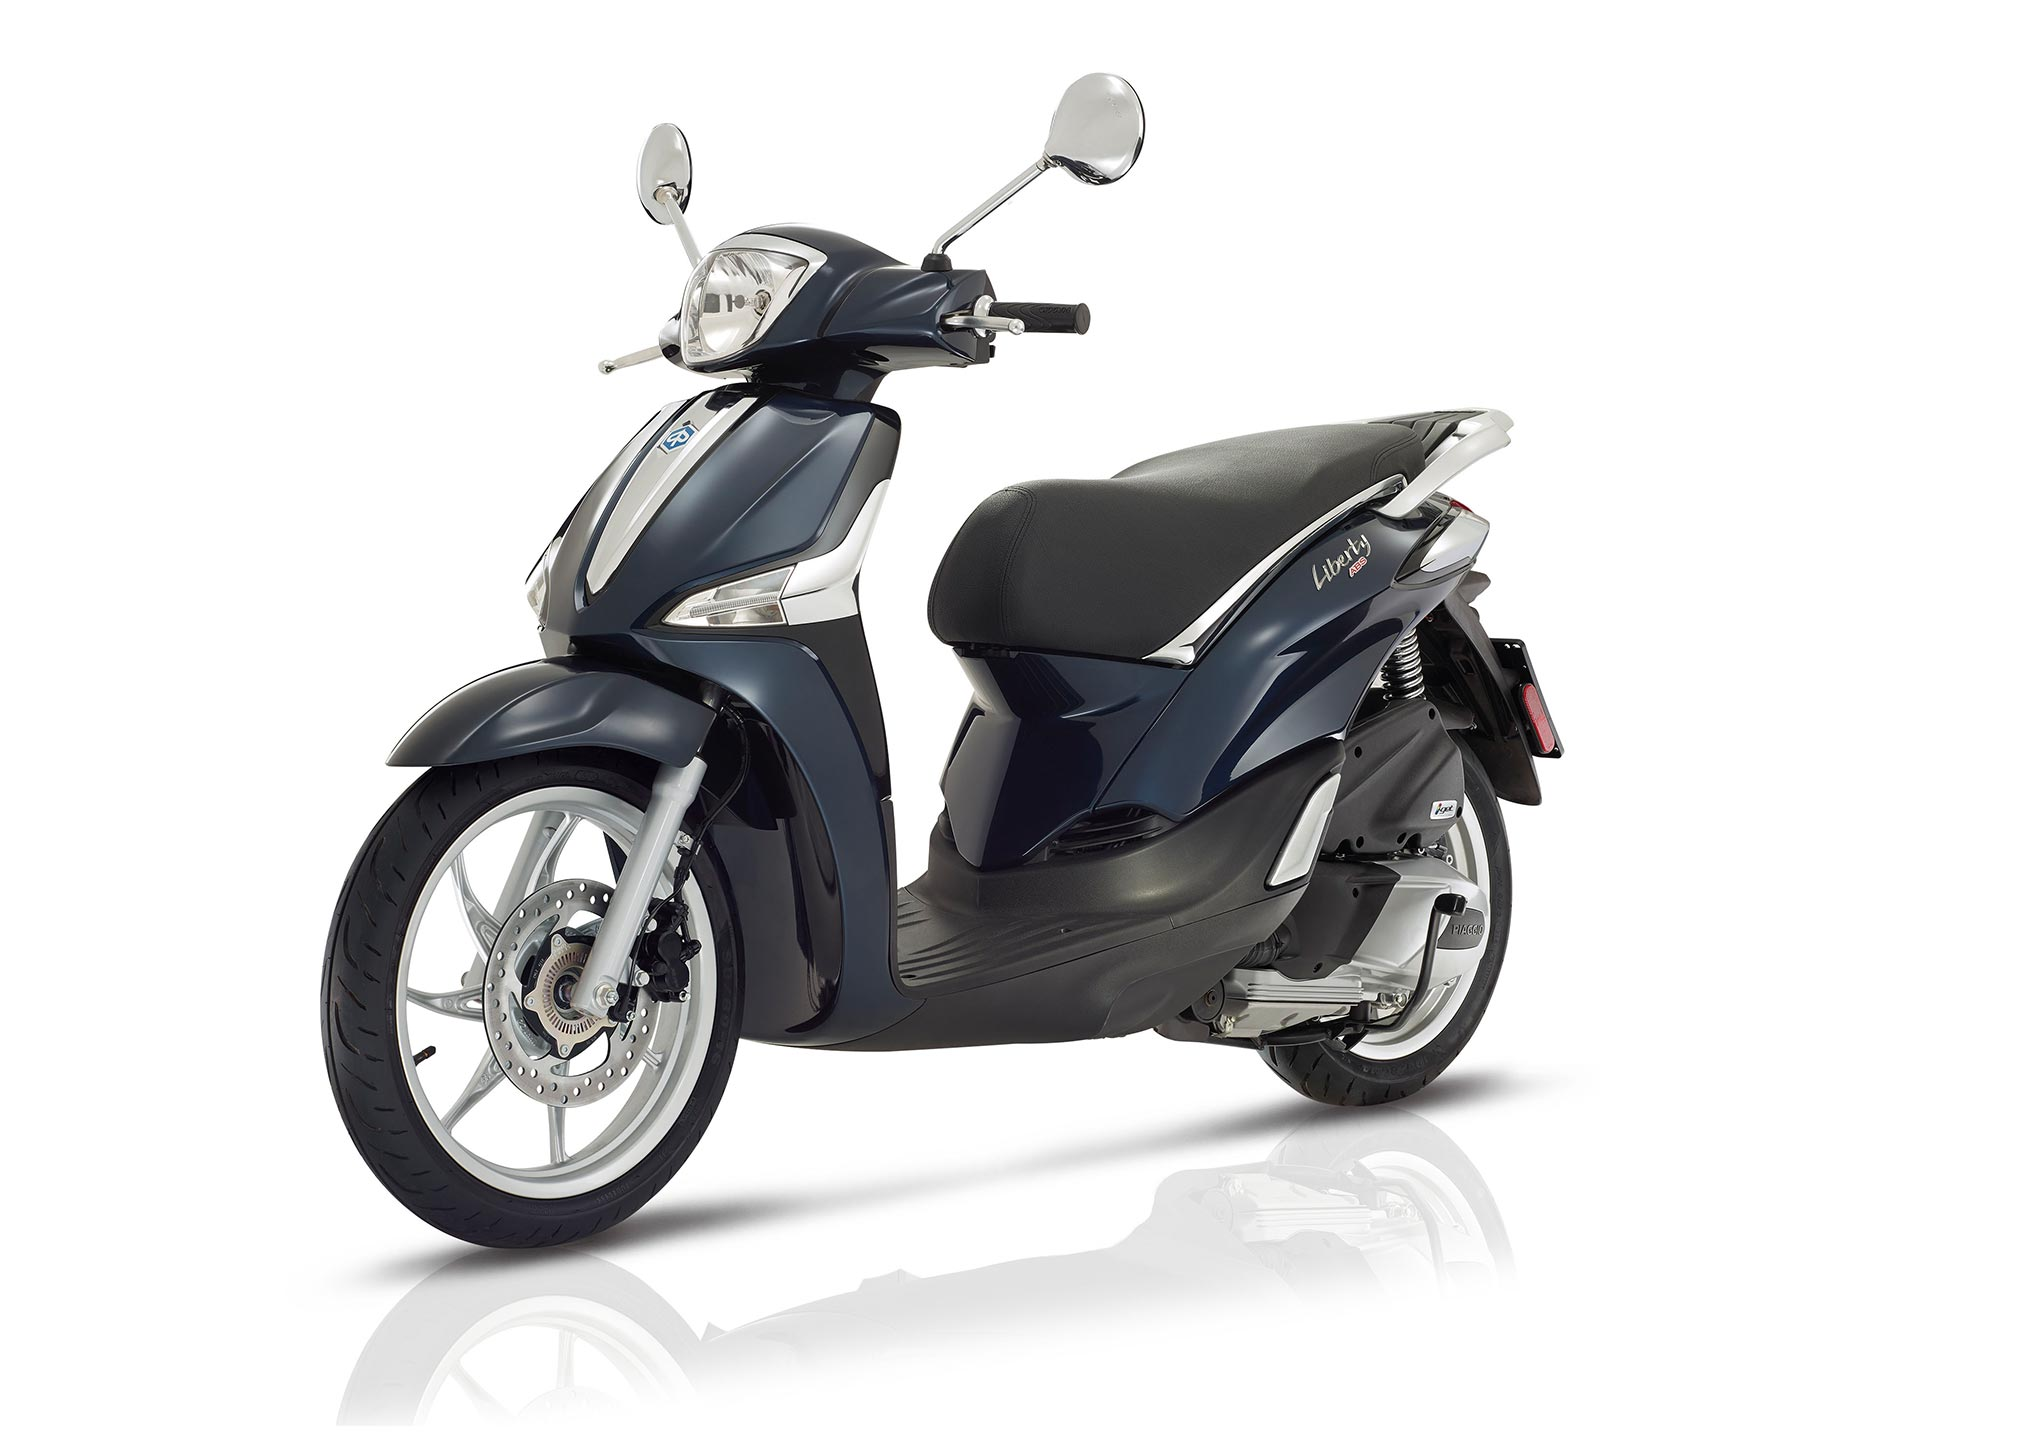 2017 piaggio liberty 125 abs iget review. Black Bedroom Furniture Sets. Home Design Ideas